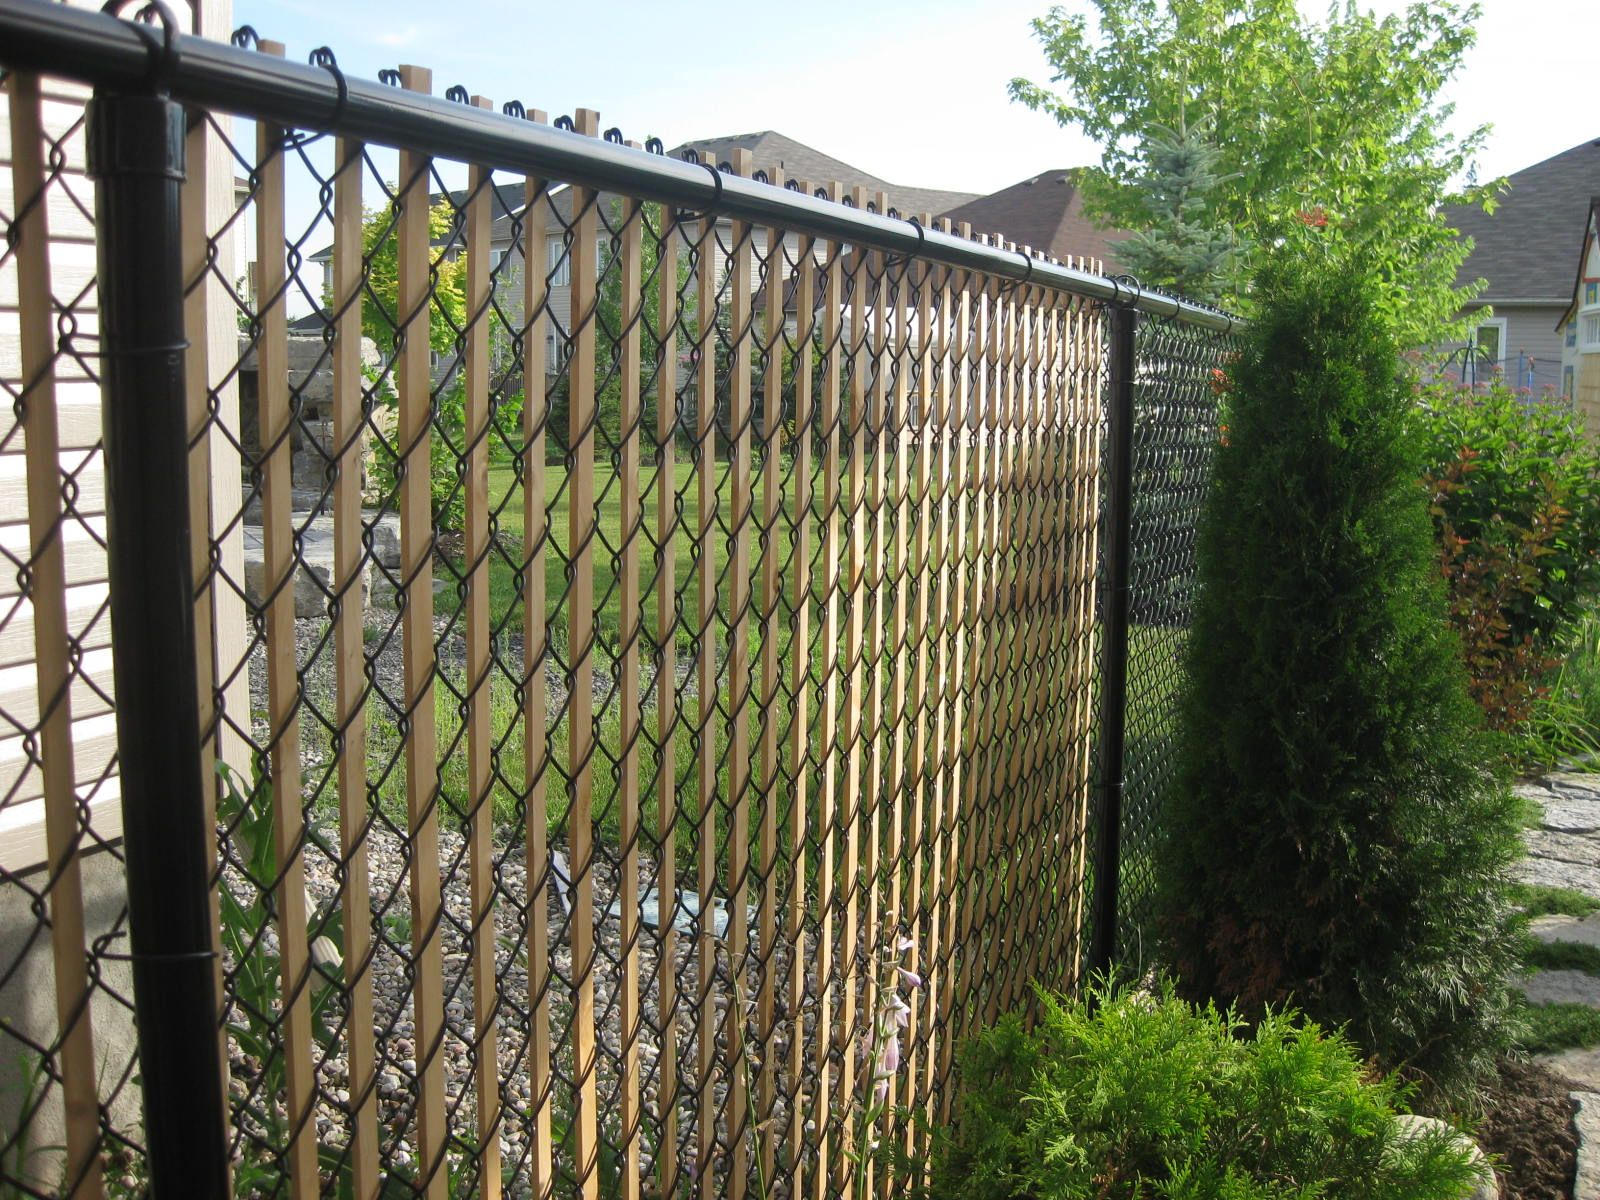 Ricks ramblings blog spruce up a chain link fence insert cedar ricks ramblings blog spruce up a chain link fence insert cedar slats baanklon Images